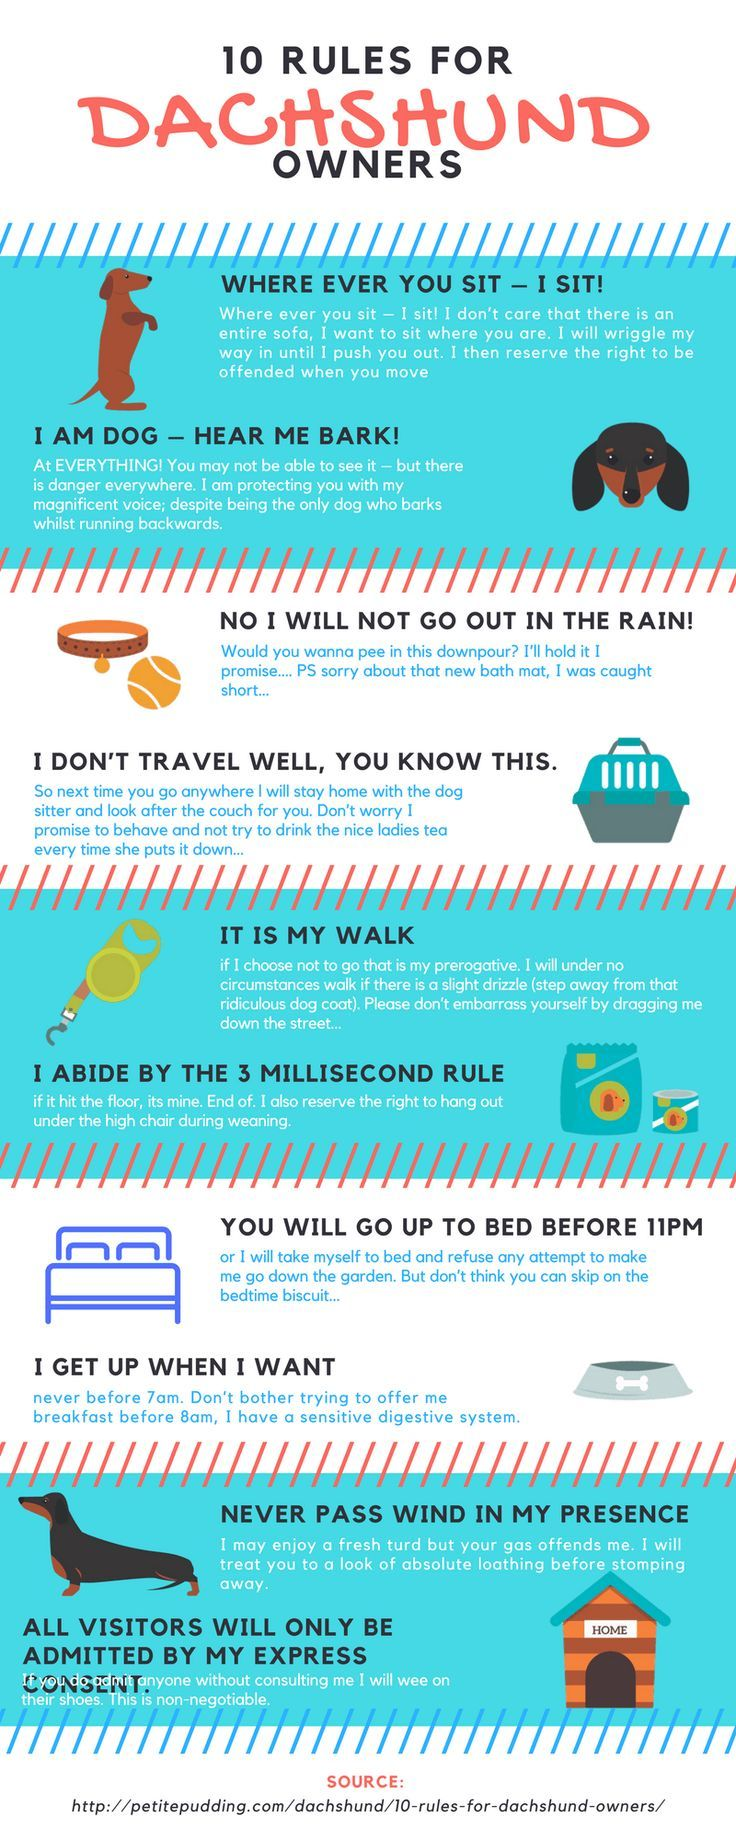 In all honesty you don't own a dachshund a dachshund owns you! Here are our top 10 rules as written by a human owned by a dachshund!